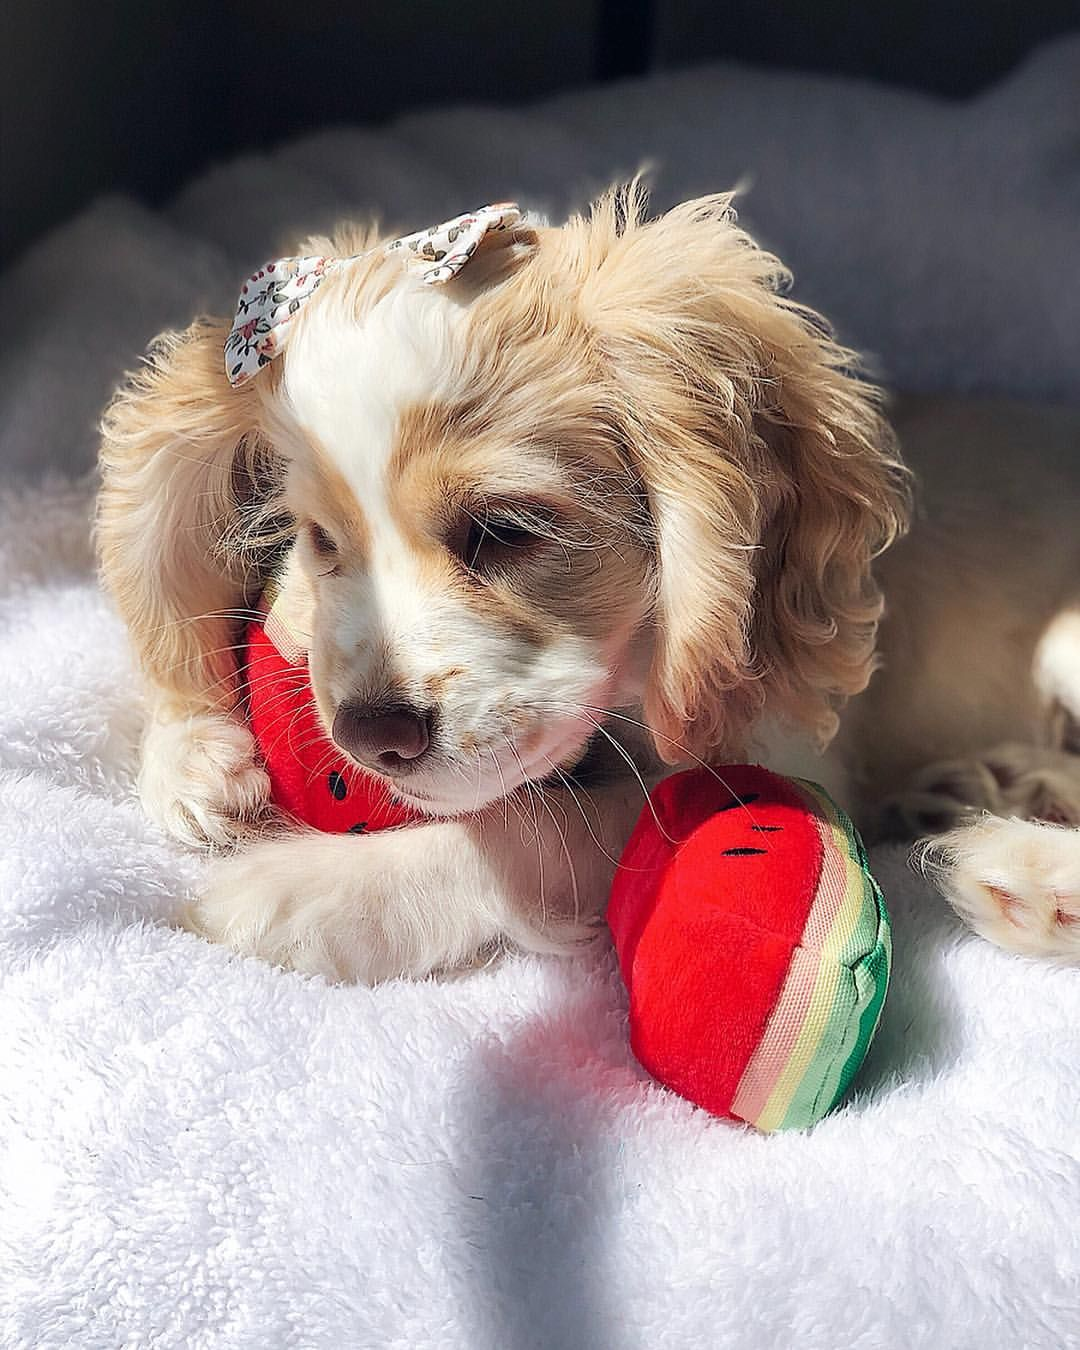 Cute Puppy Cocker Spaniel Watermelon Bark Toys Funny Puppy Pictures Spaniel Puppies Cute Animals